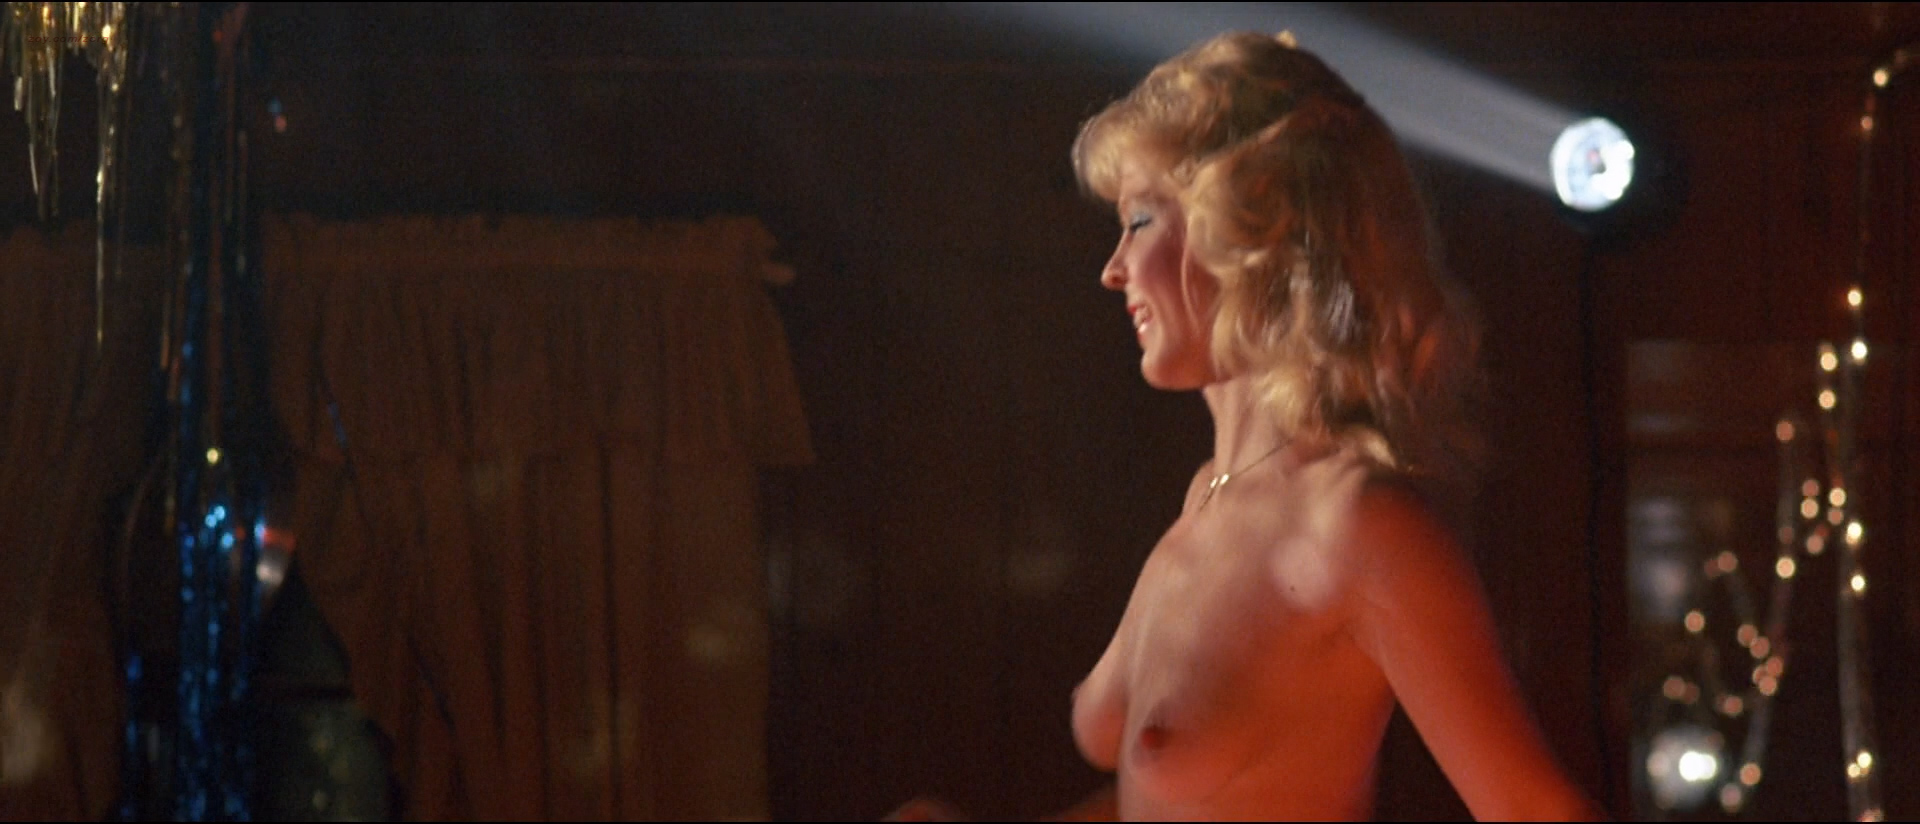 Mary stuart masterson nude topic